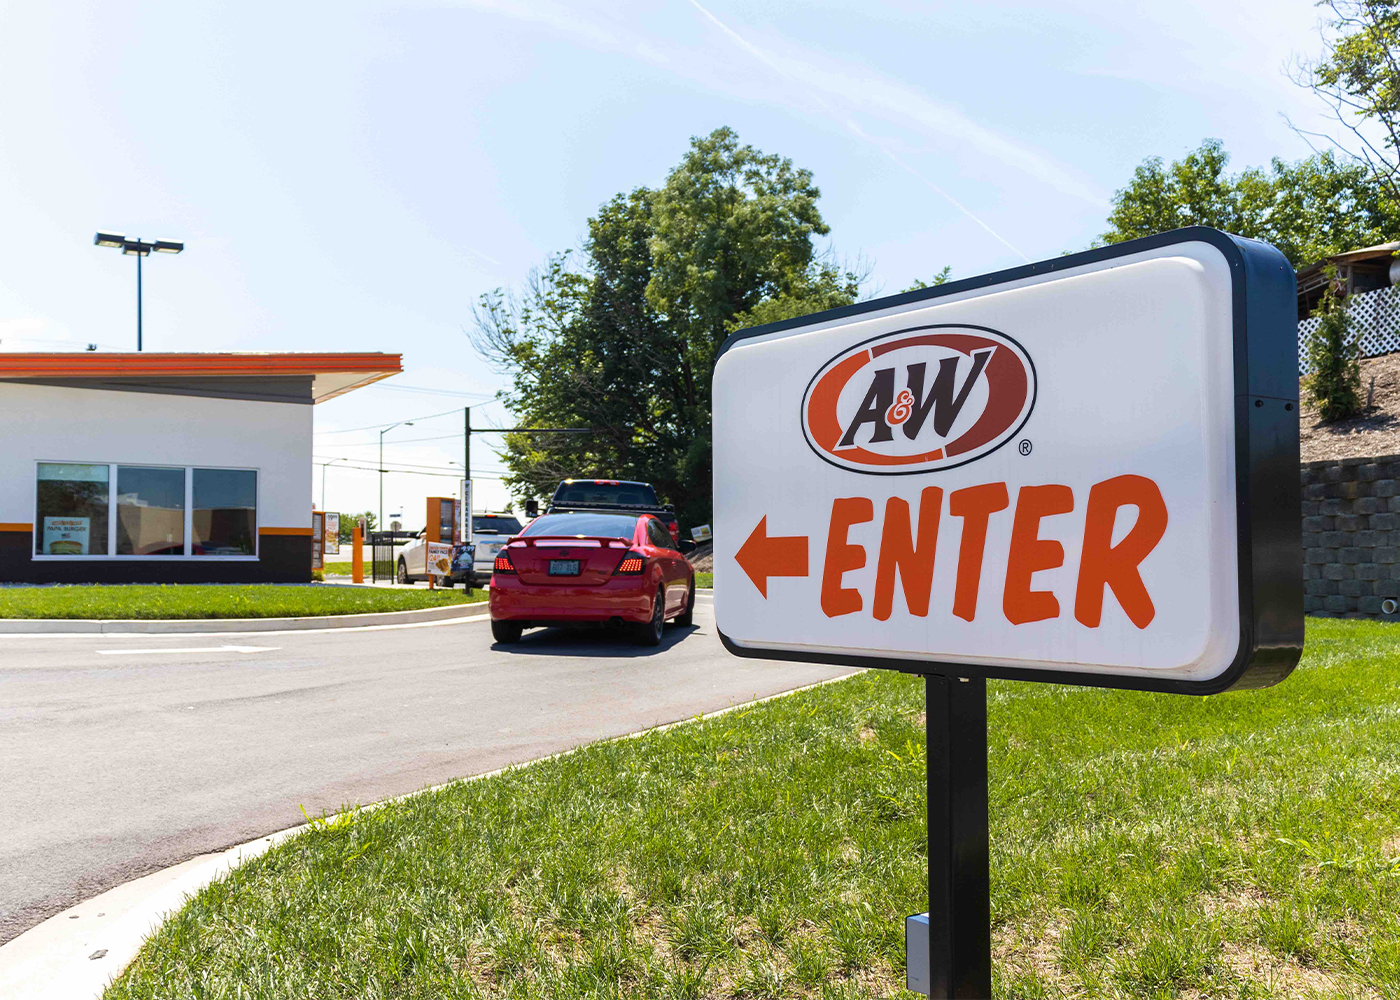 Exterior photo of A&W Restaurant drive-thru sign during the daytime in Richmond, KY.